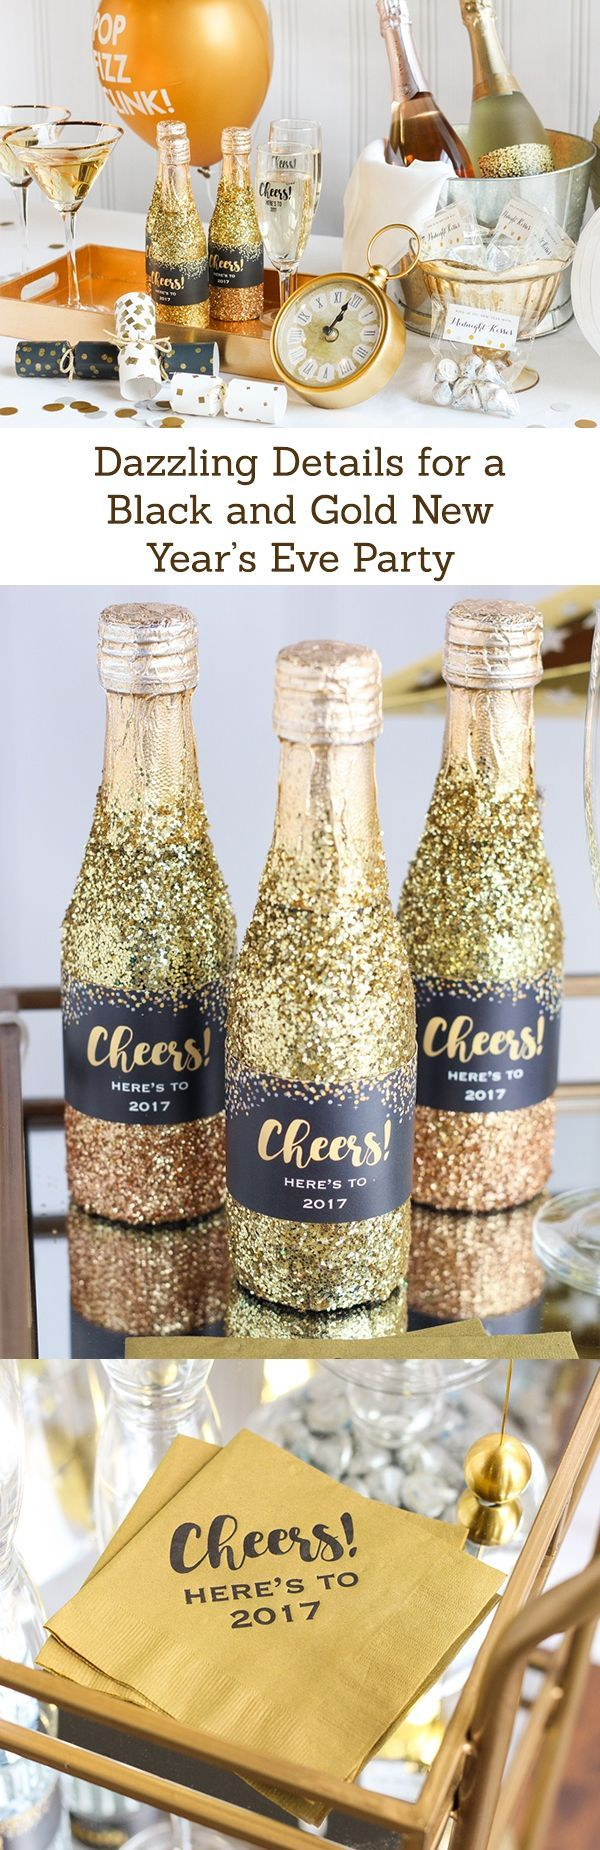 Get ready for a dazzling New Year's Eve party with our favorite tips, tricks and ideas!